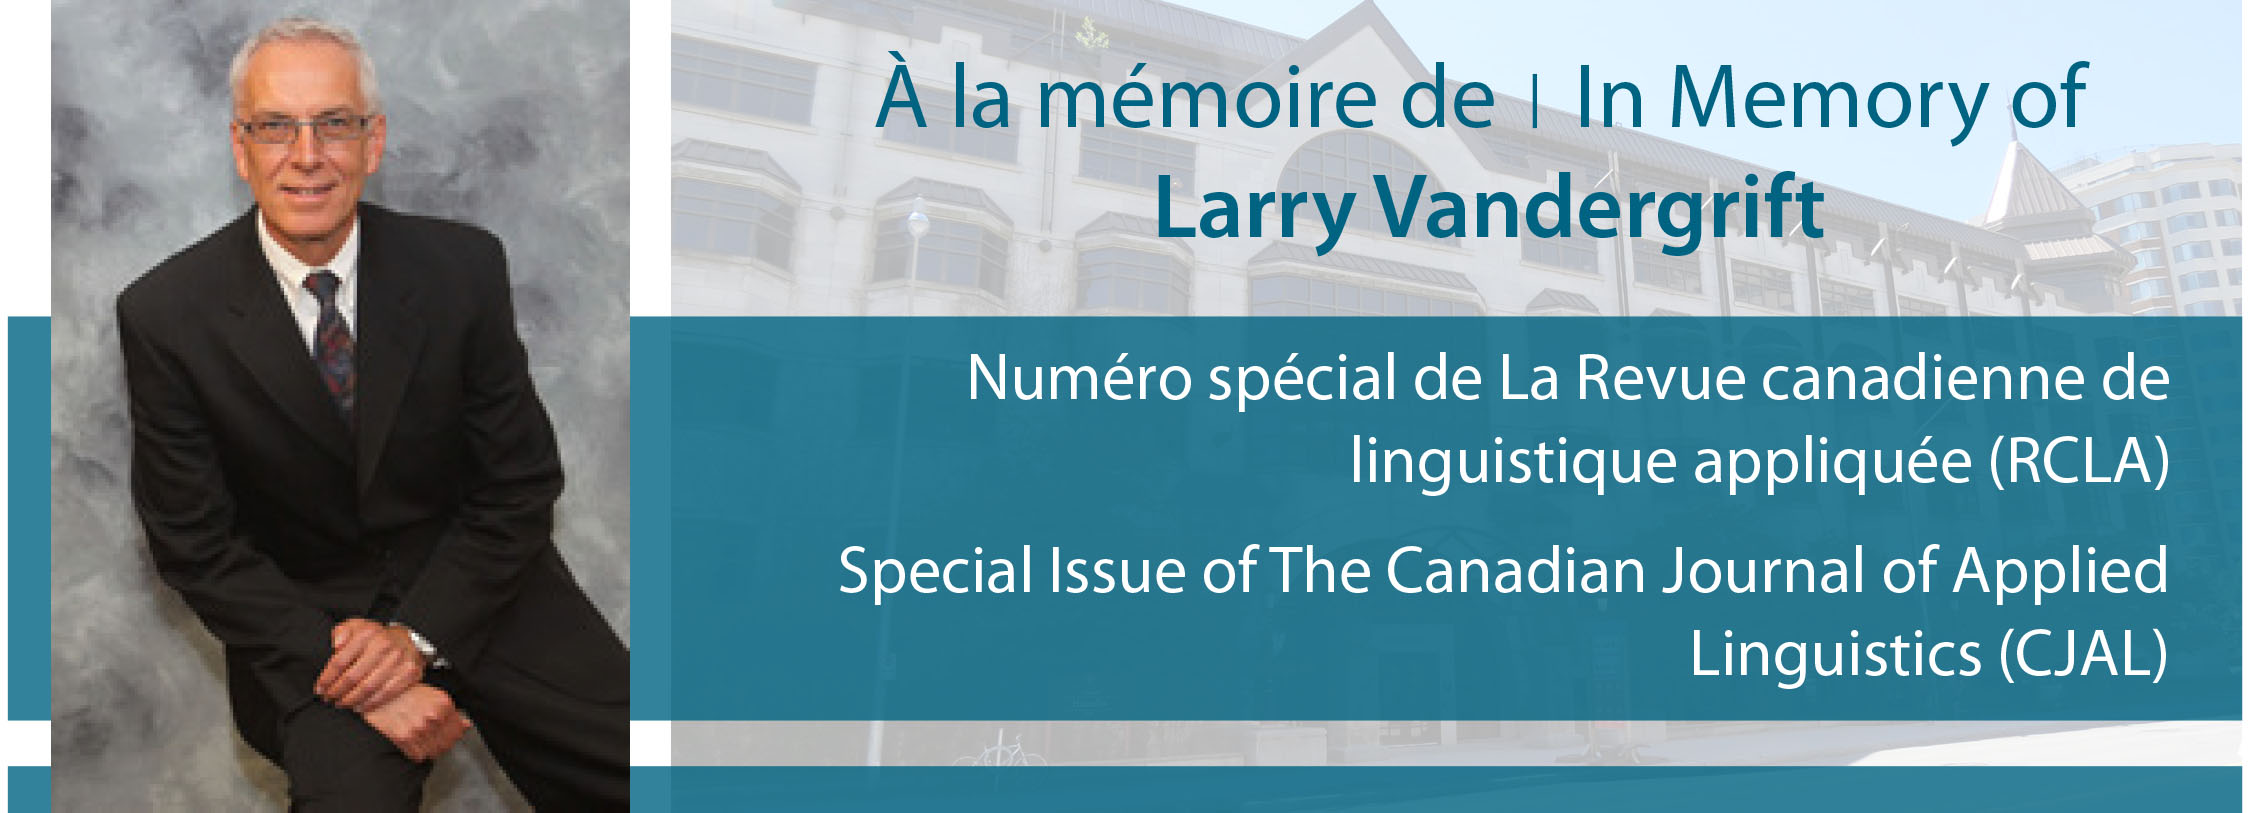 In Memory of Larry Vandergrift